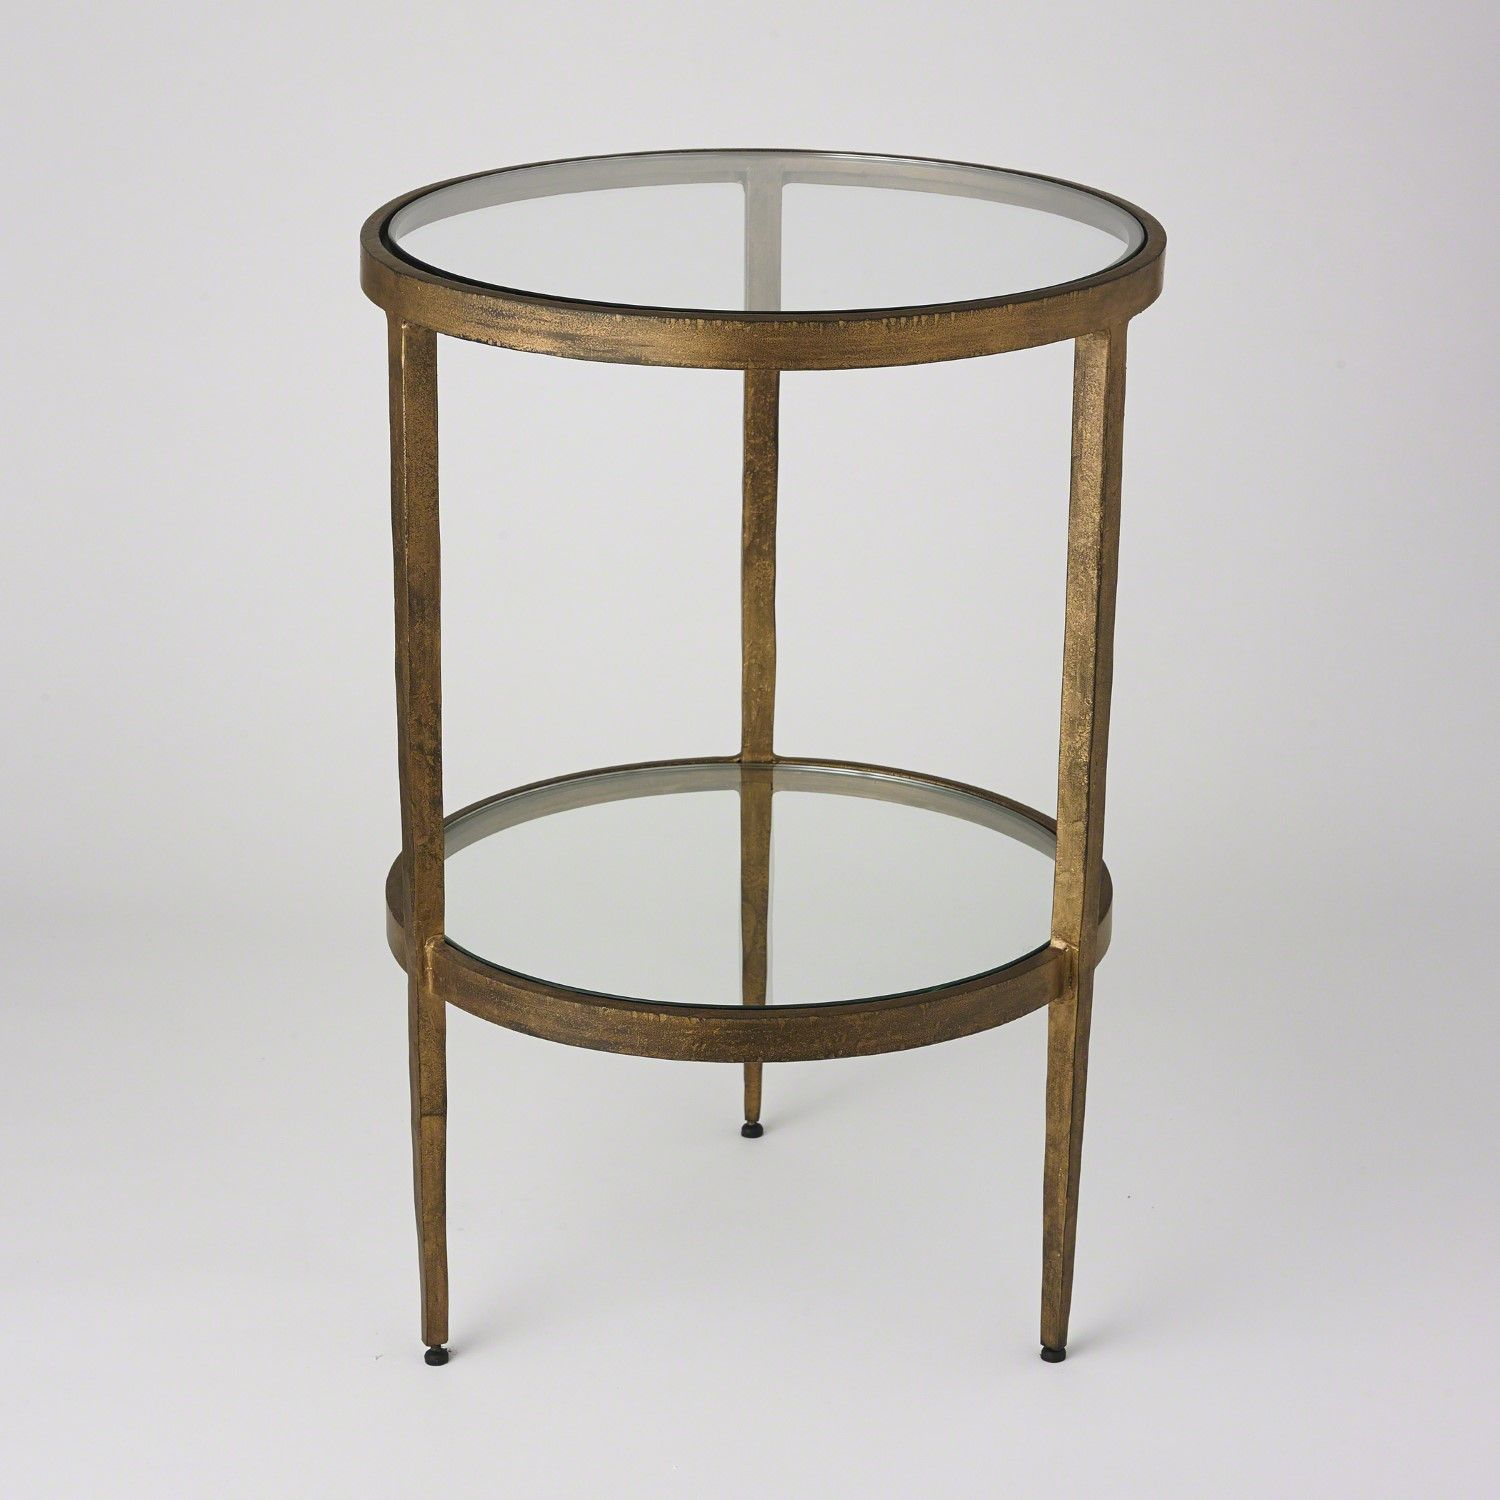 Laforge Two Tiered Side Table Antique Gold Side Table Modern End Tables Accent Table